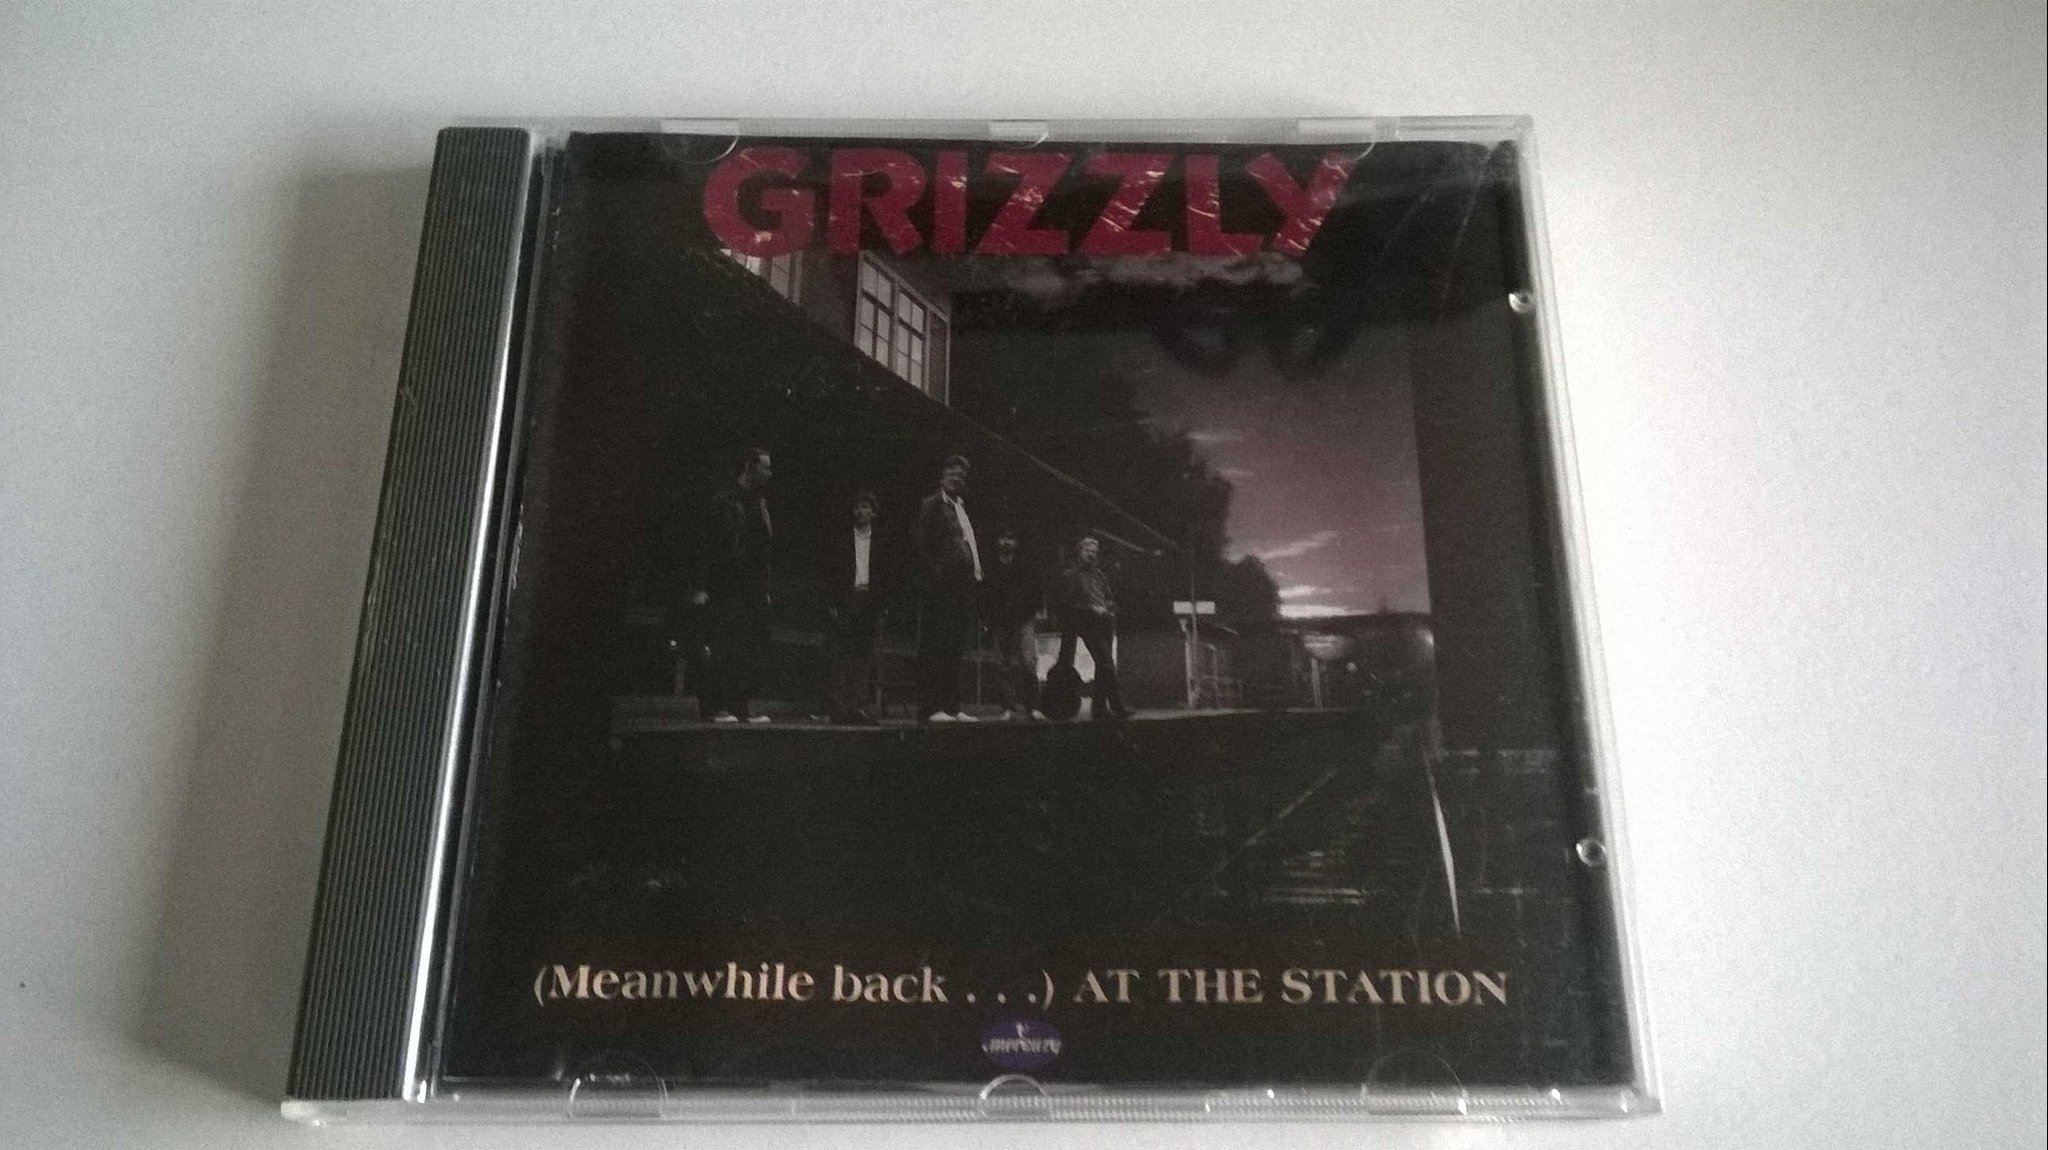 Grizzly - Meanwhile back... At The Station, CD